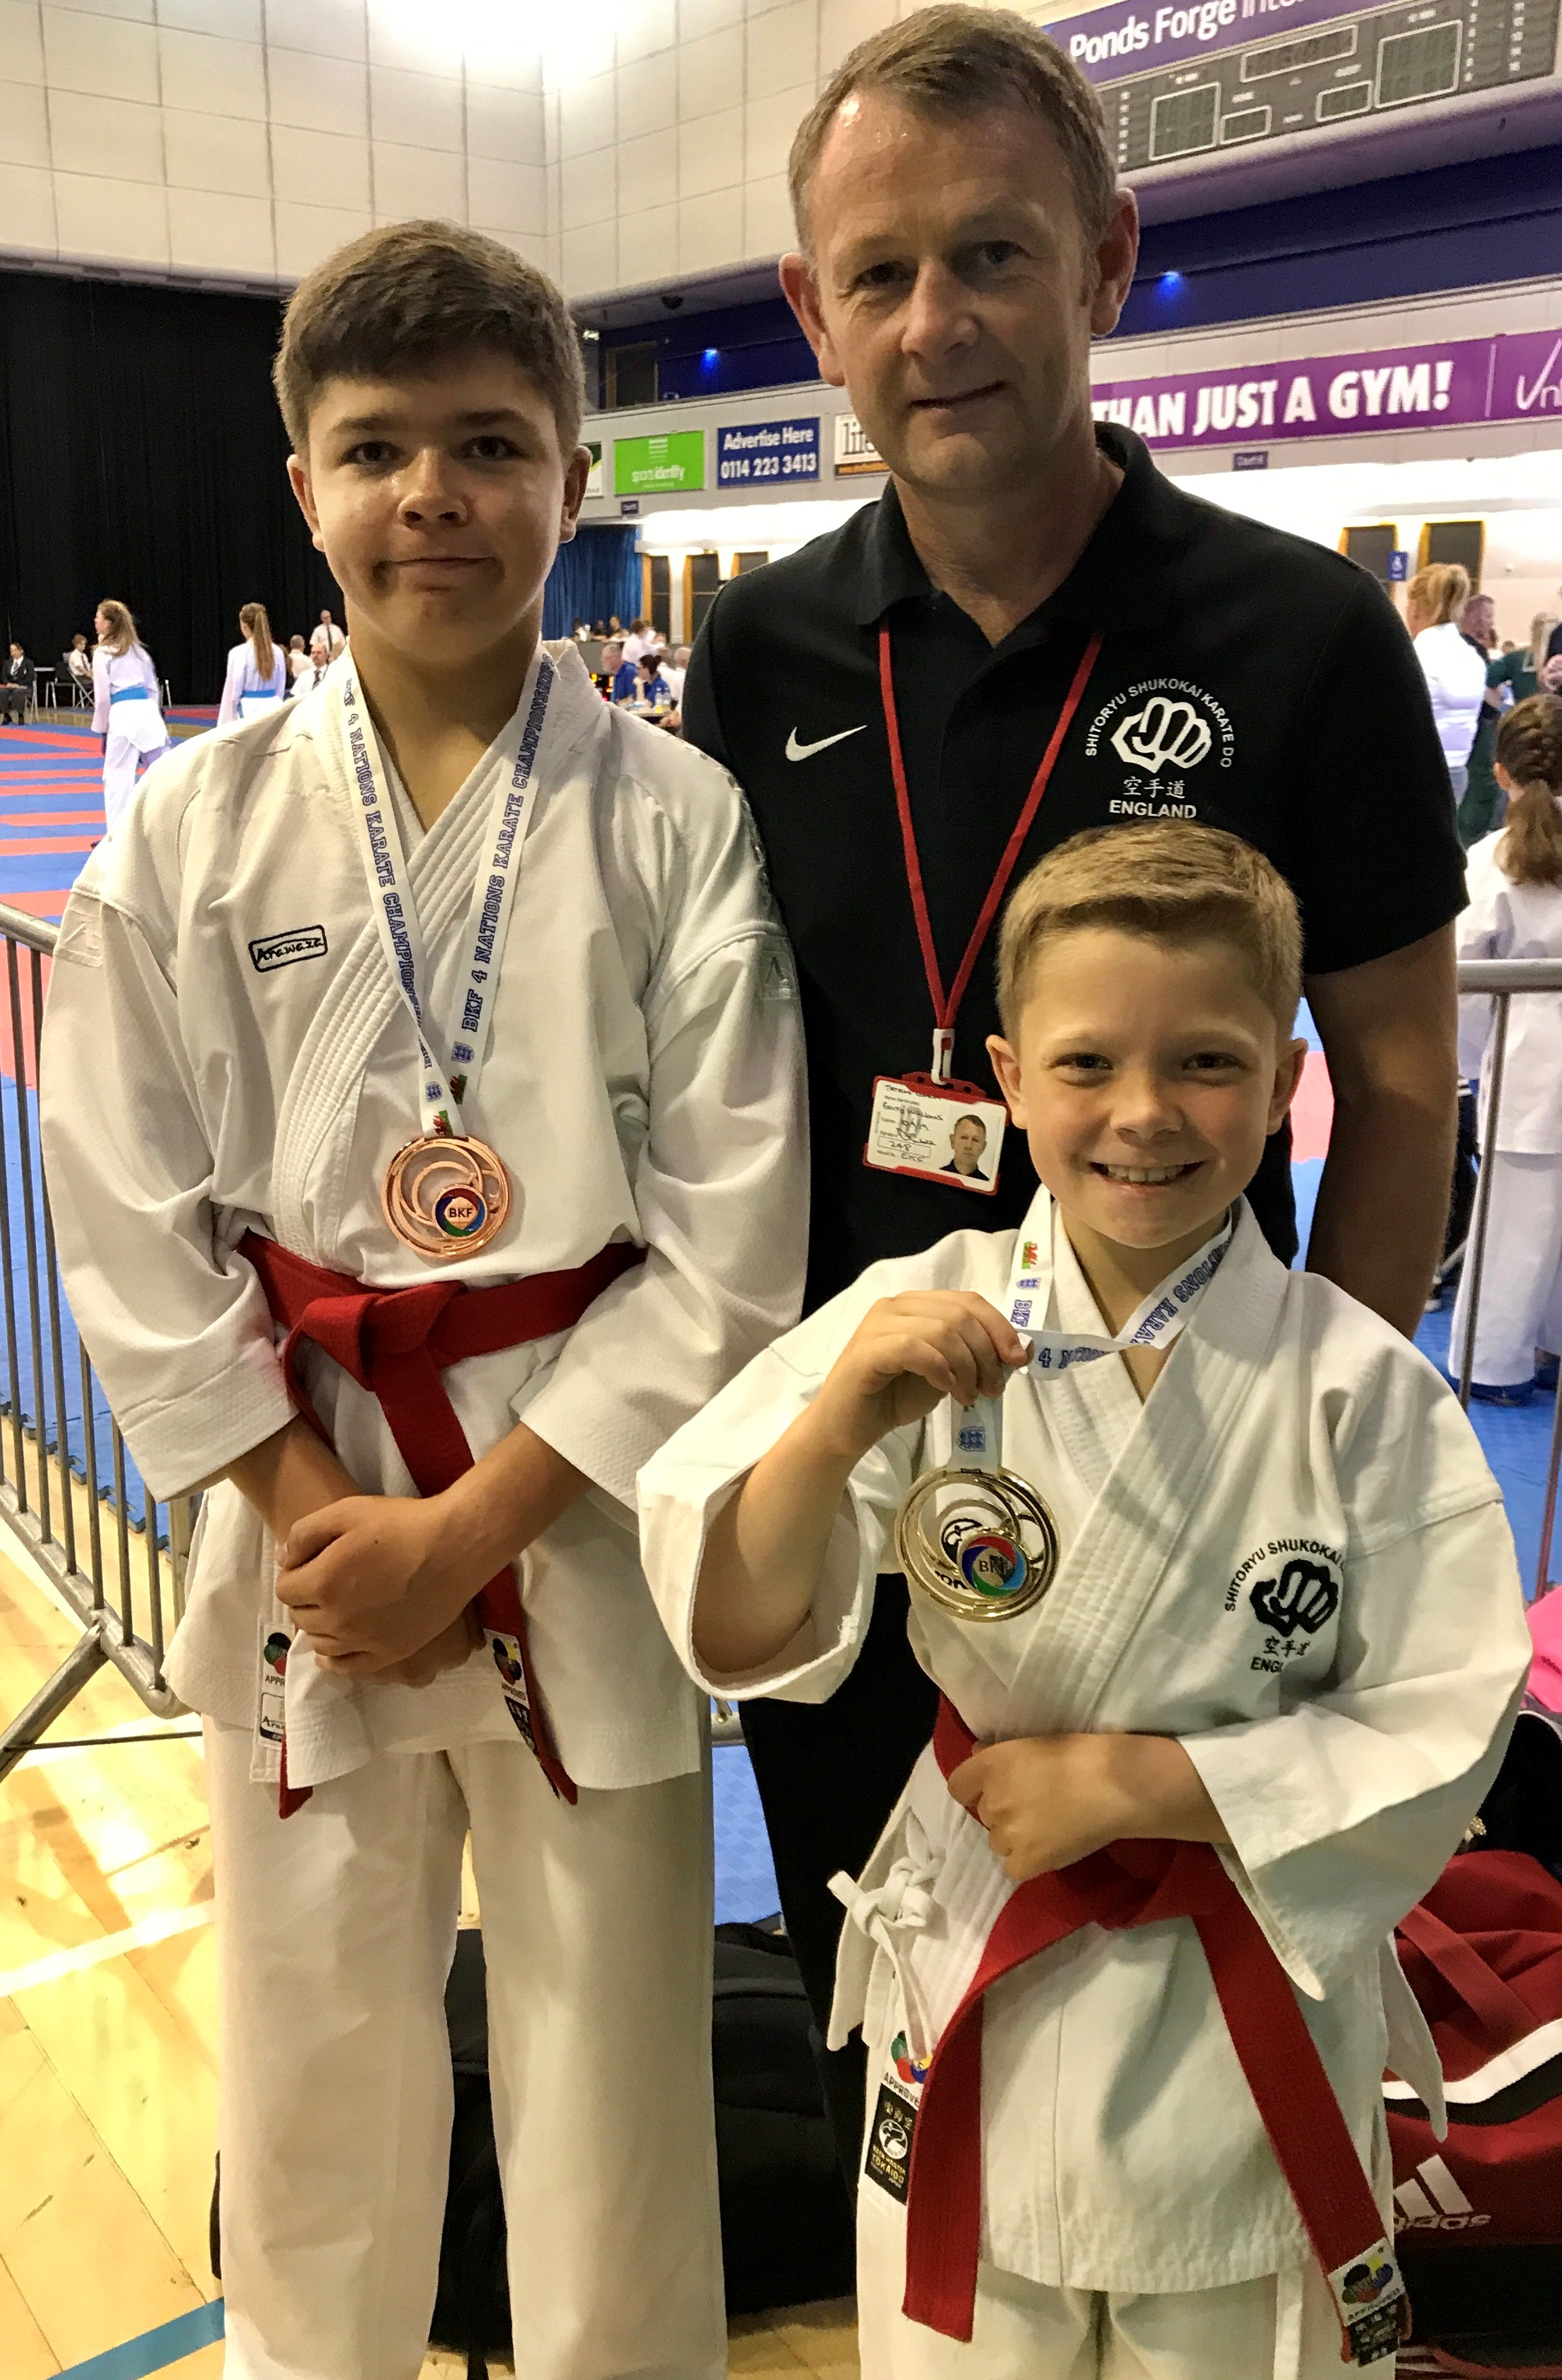 Williams Karate Squad member Jacob Lewis becomes British Champion as brother Joshua claims bronze